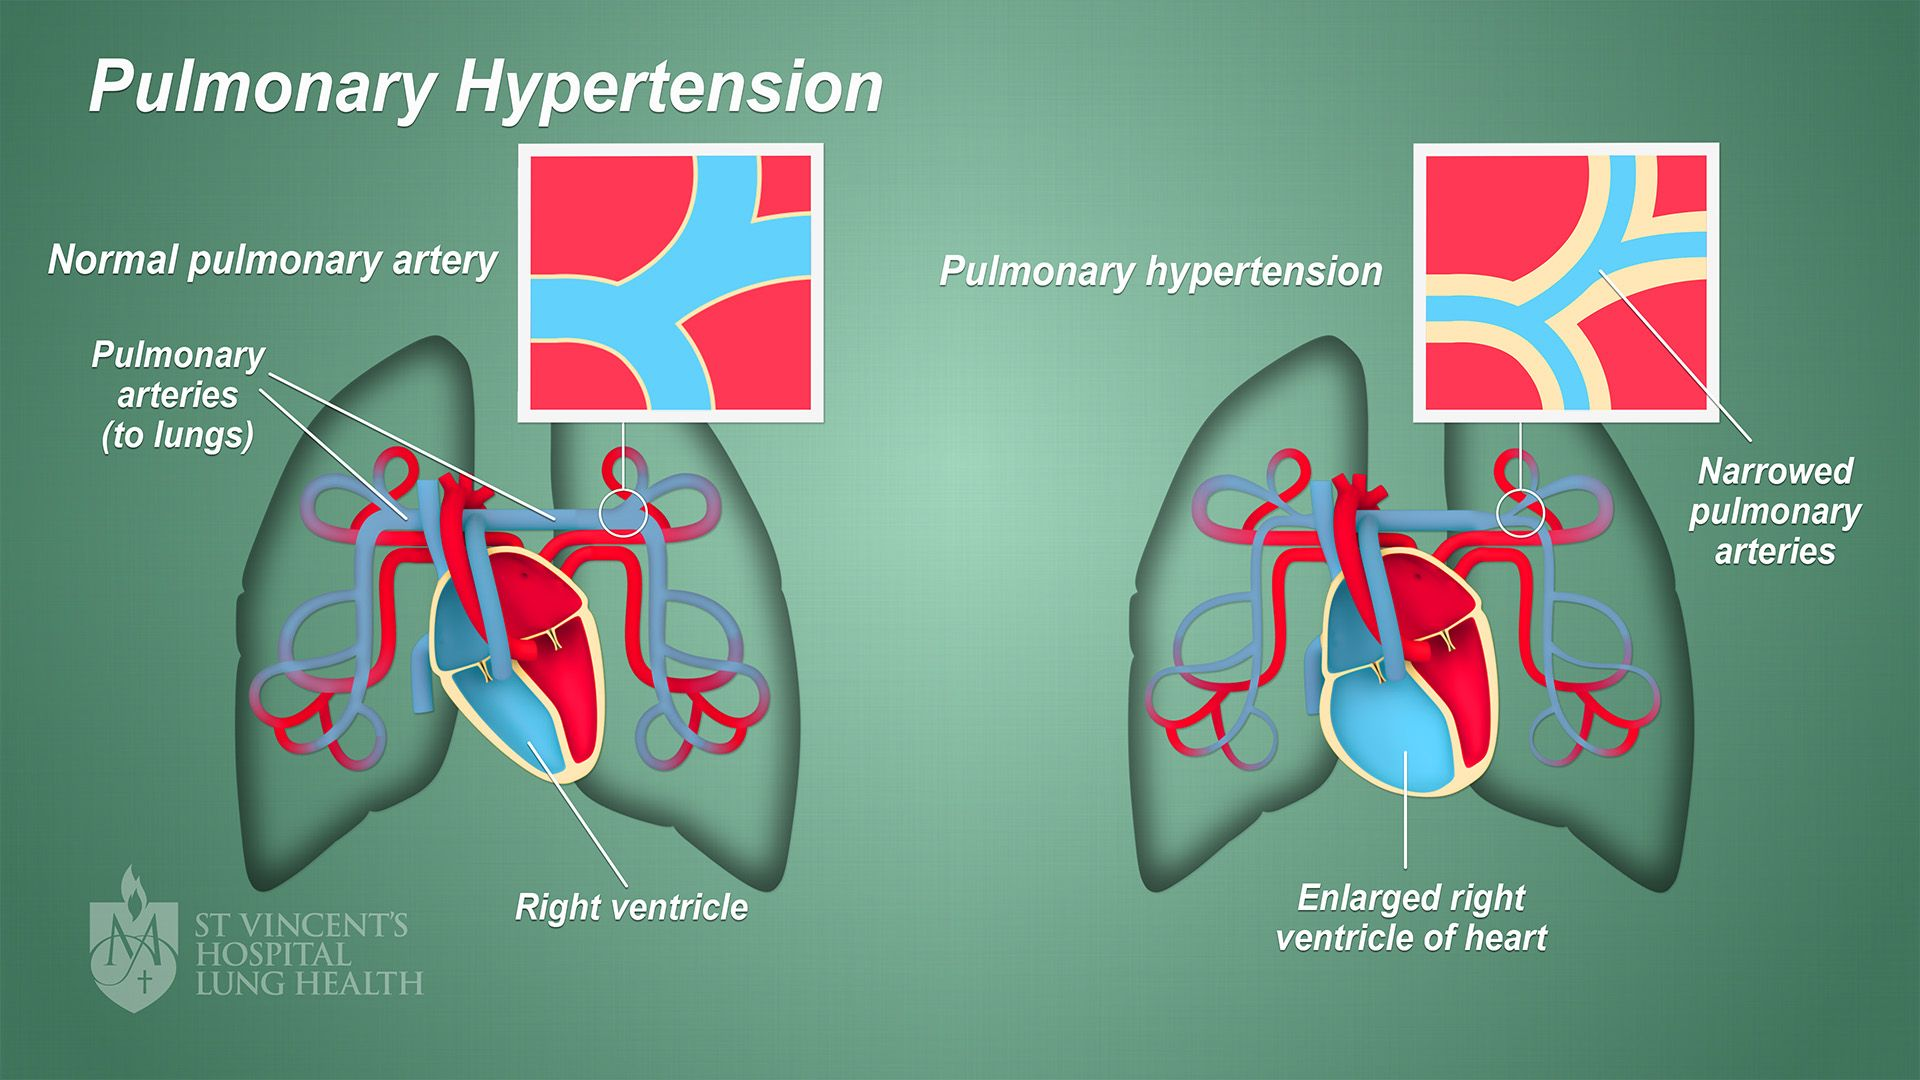 Pin on kicking pulmonary hypertension's ass